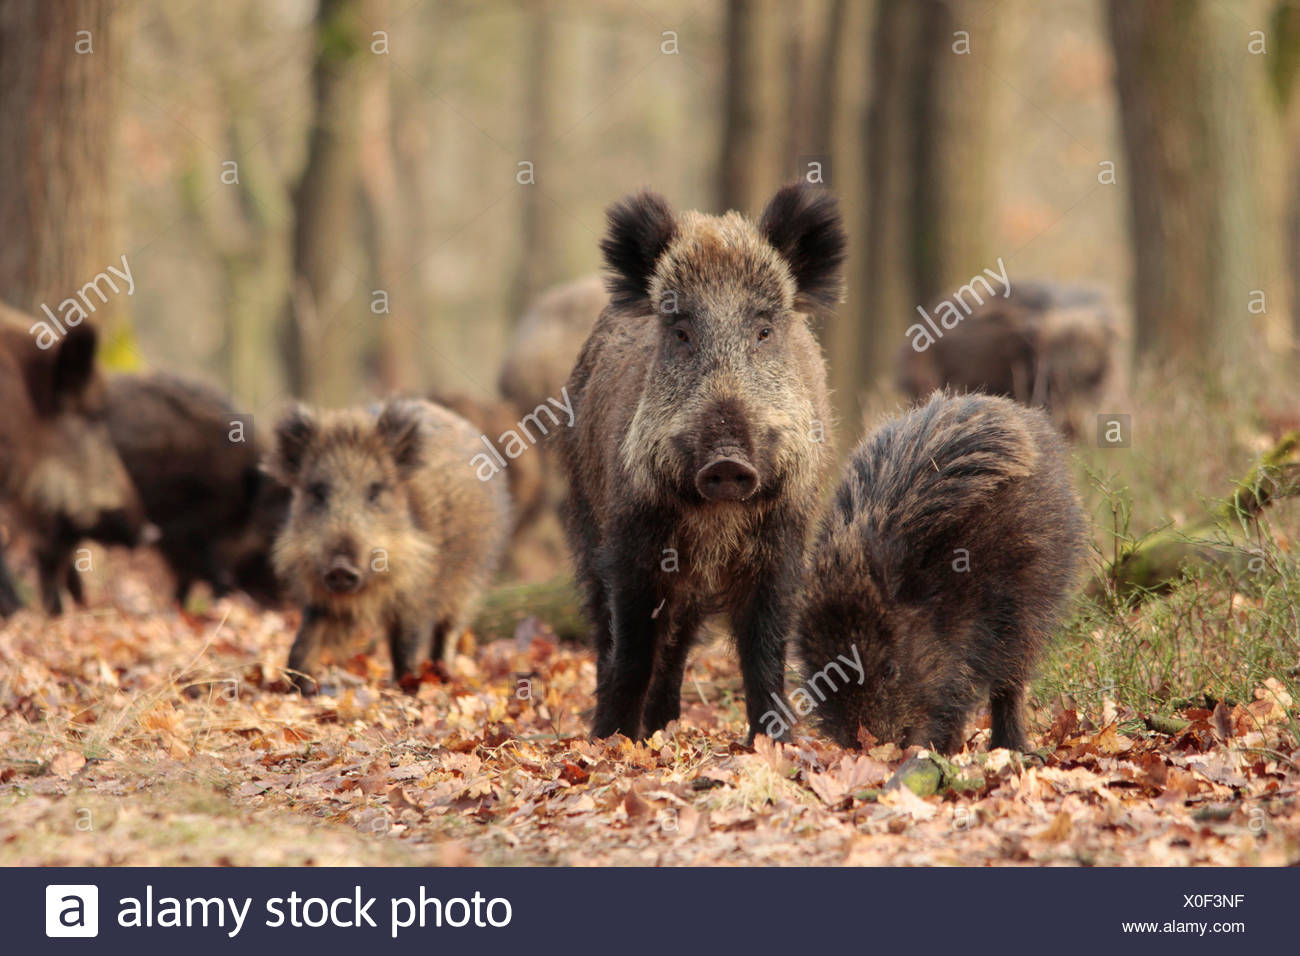 Wild boars (Sus scrofa) in an oak forest at winter. - Stock Image